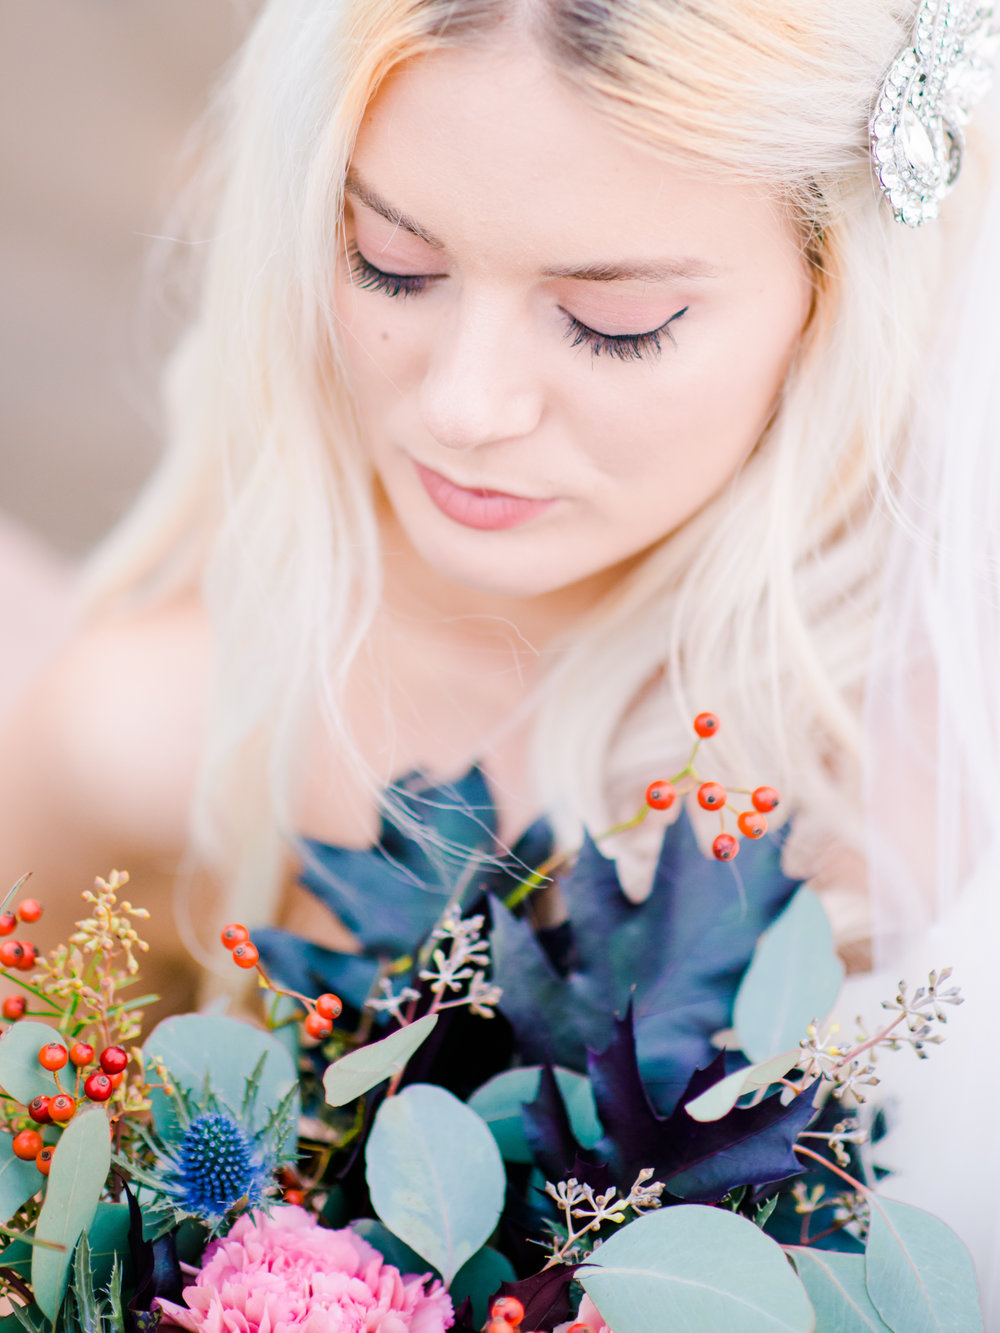 Elegant Organic Fall Swedish Bridal Wedding Styled Shoot - Erika Alvarenga Photography-28.jpg